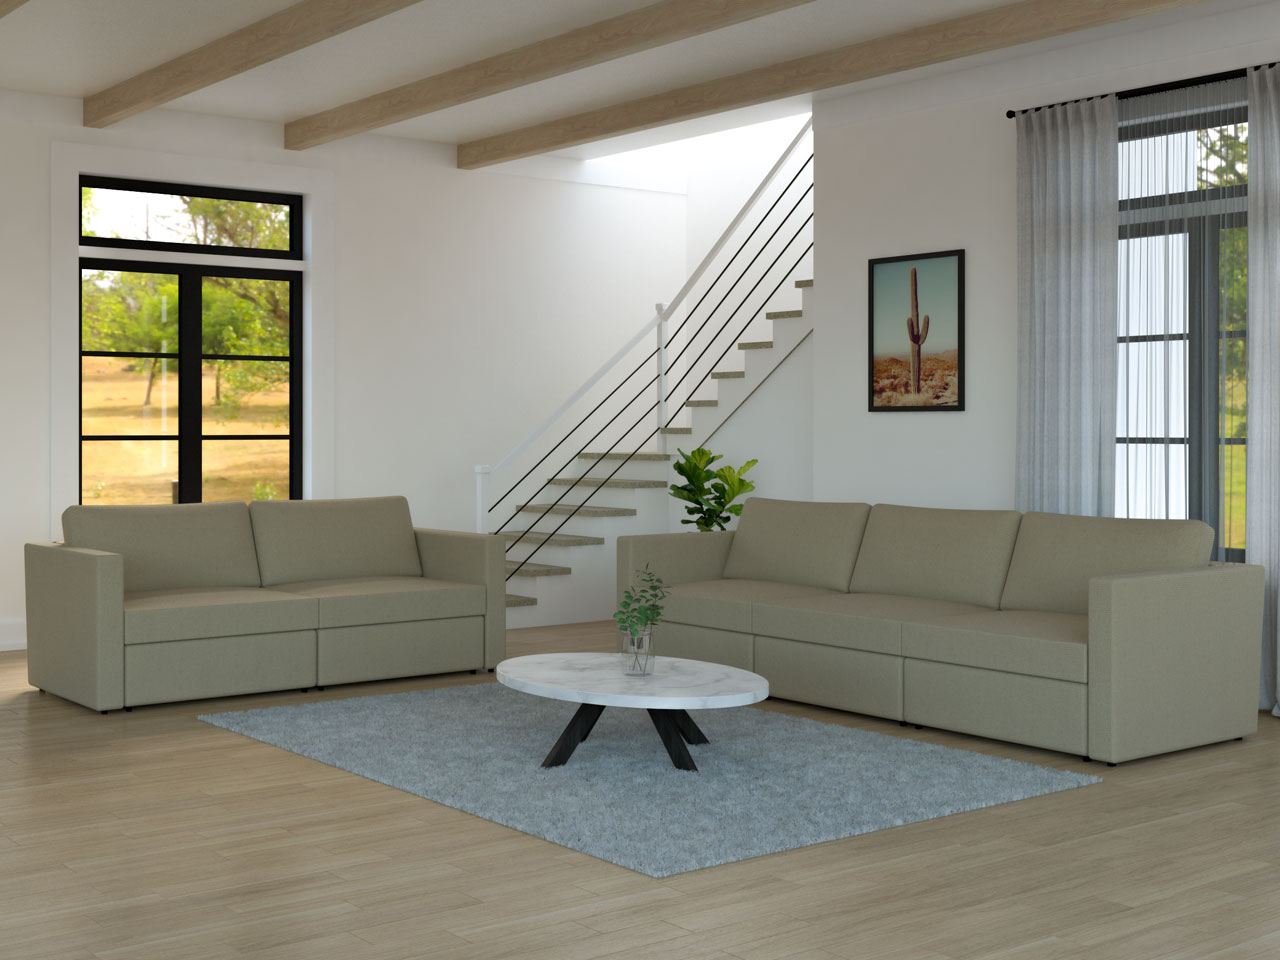 Living room with L-shaped arrangement of sofa and loveseat